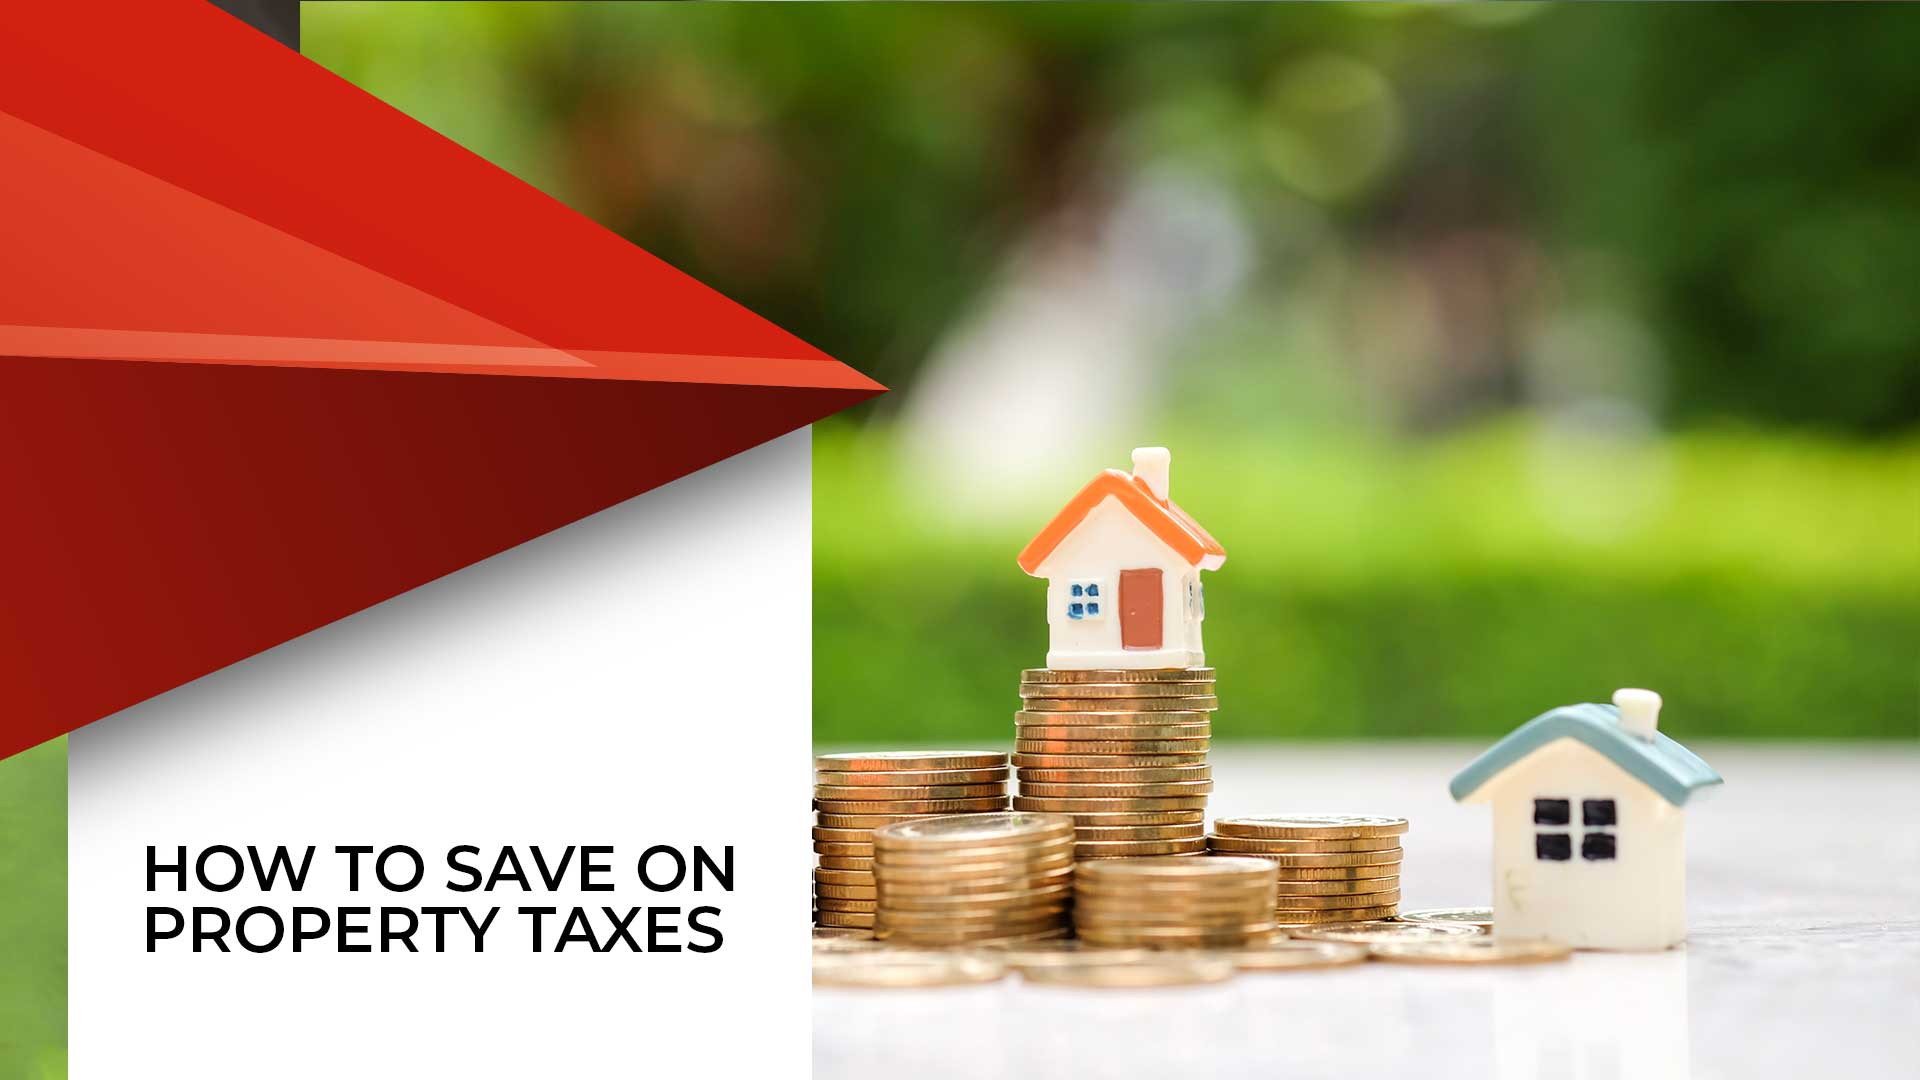 Taxes on Property Purchase And How to Save On Them